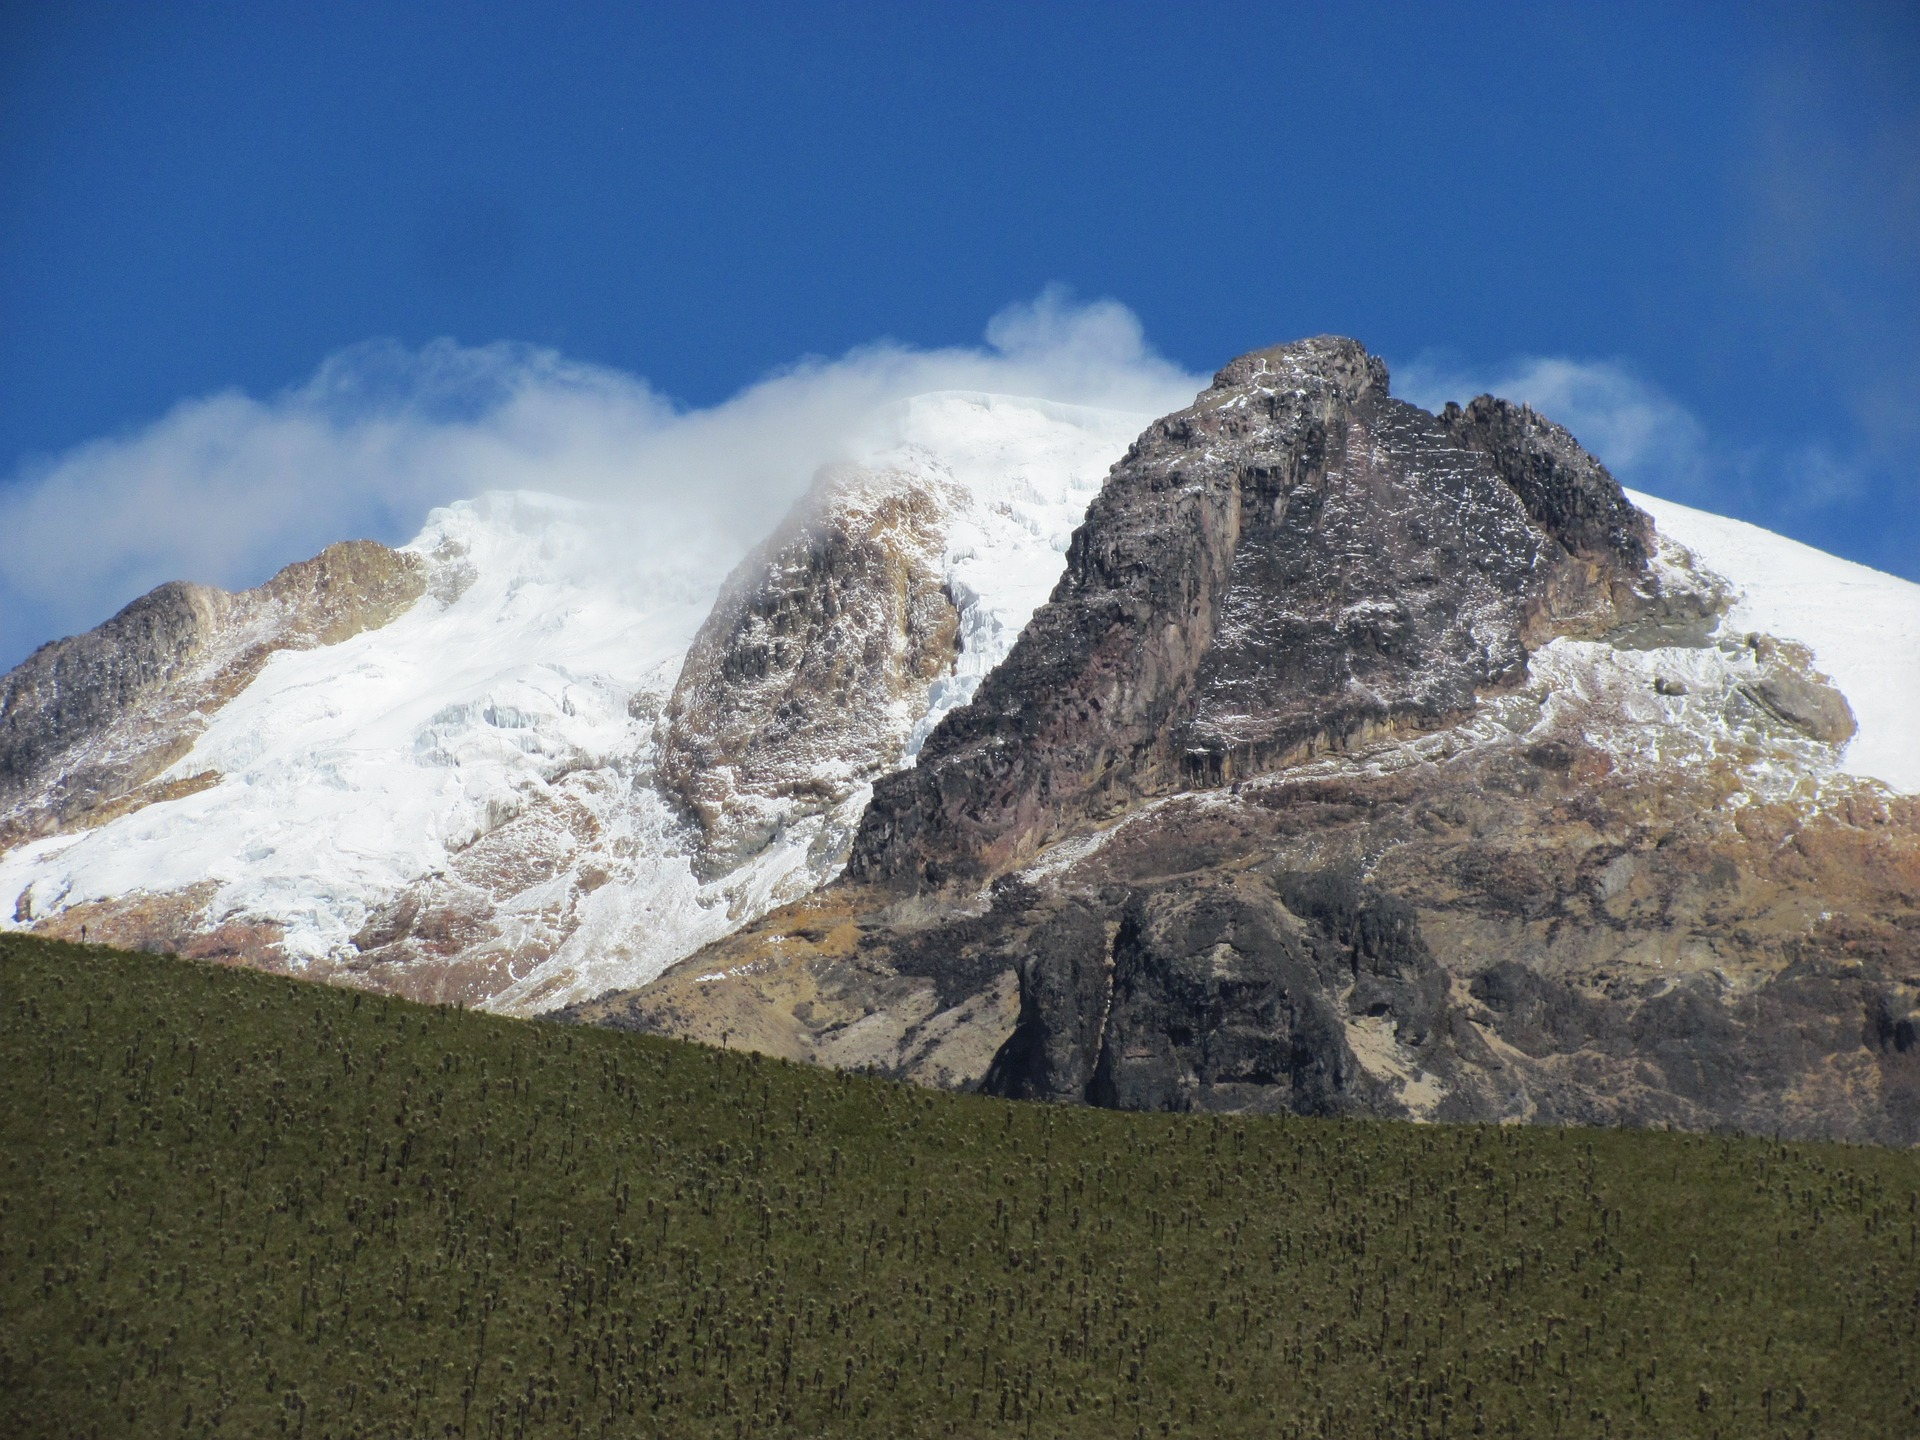 Snow-capped peaks of a rocky, treeless plateau in tropical South America.